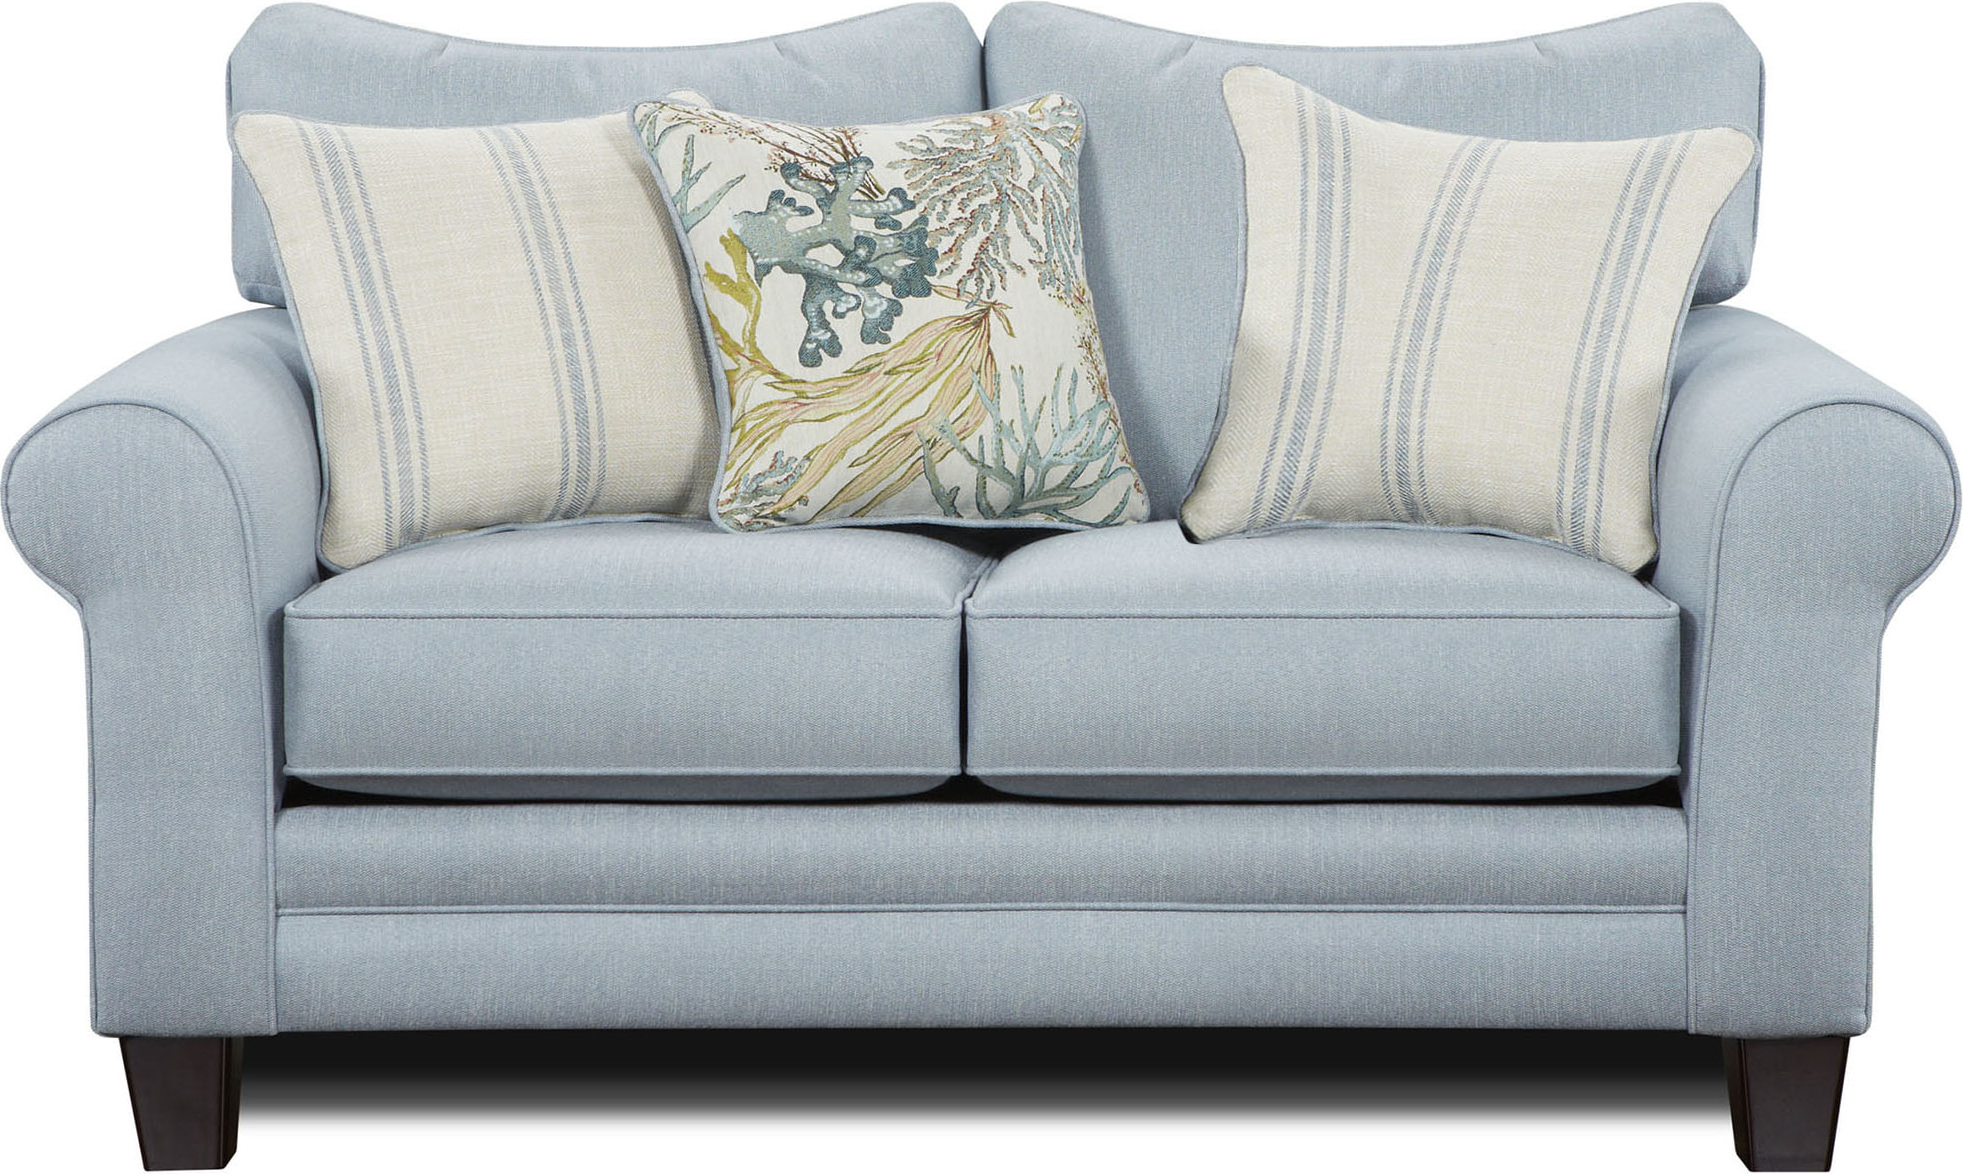 Hedgeapple Pertaining To Favorite Dayse Contemporary Loveseats With Cushion (View 9 of 25)